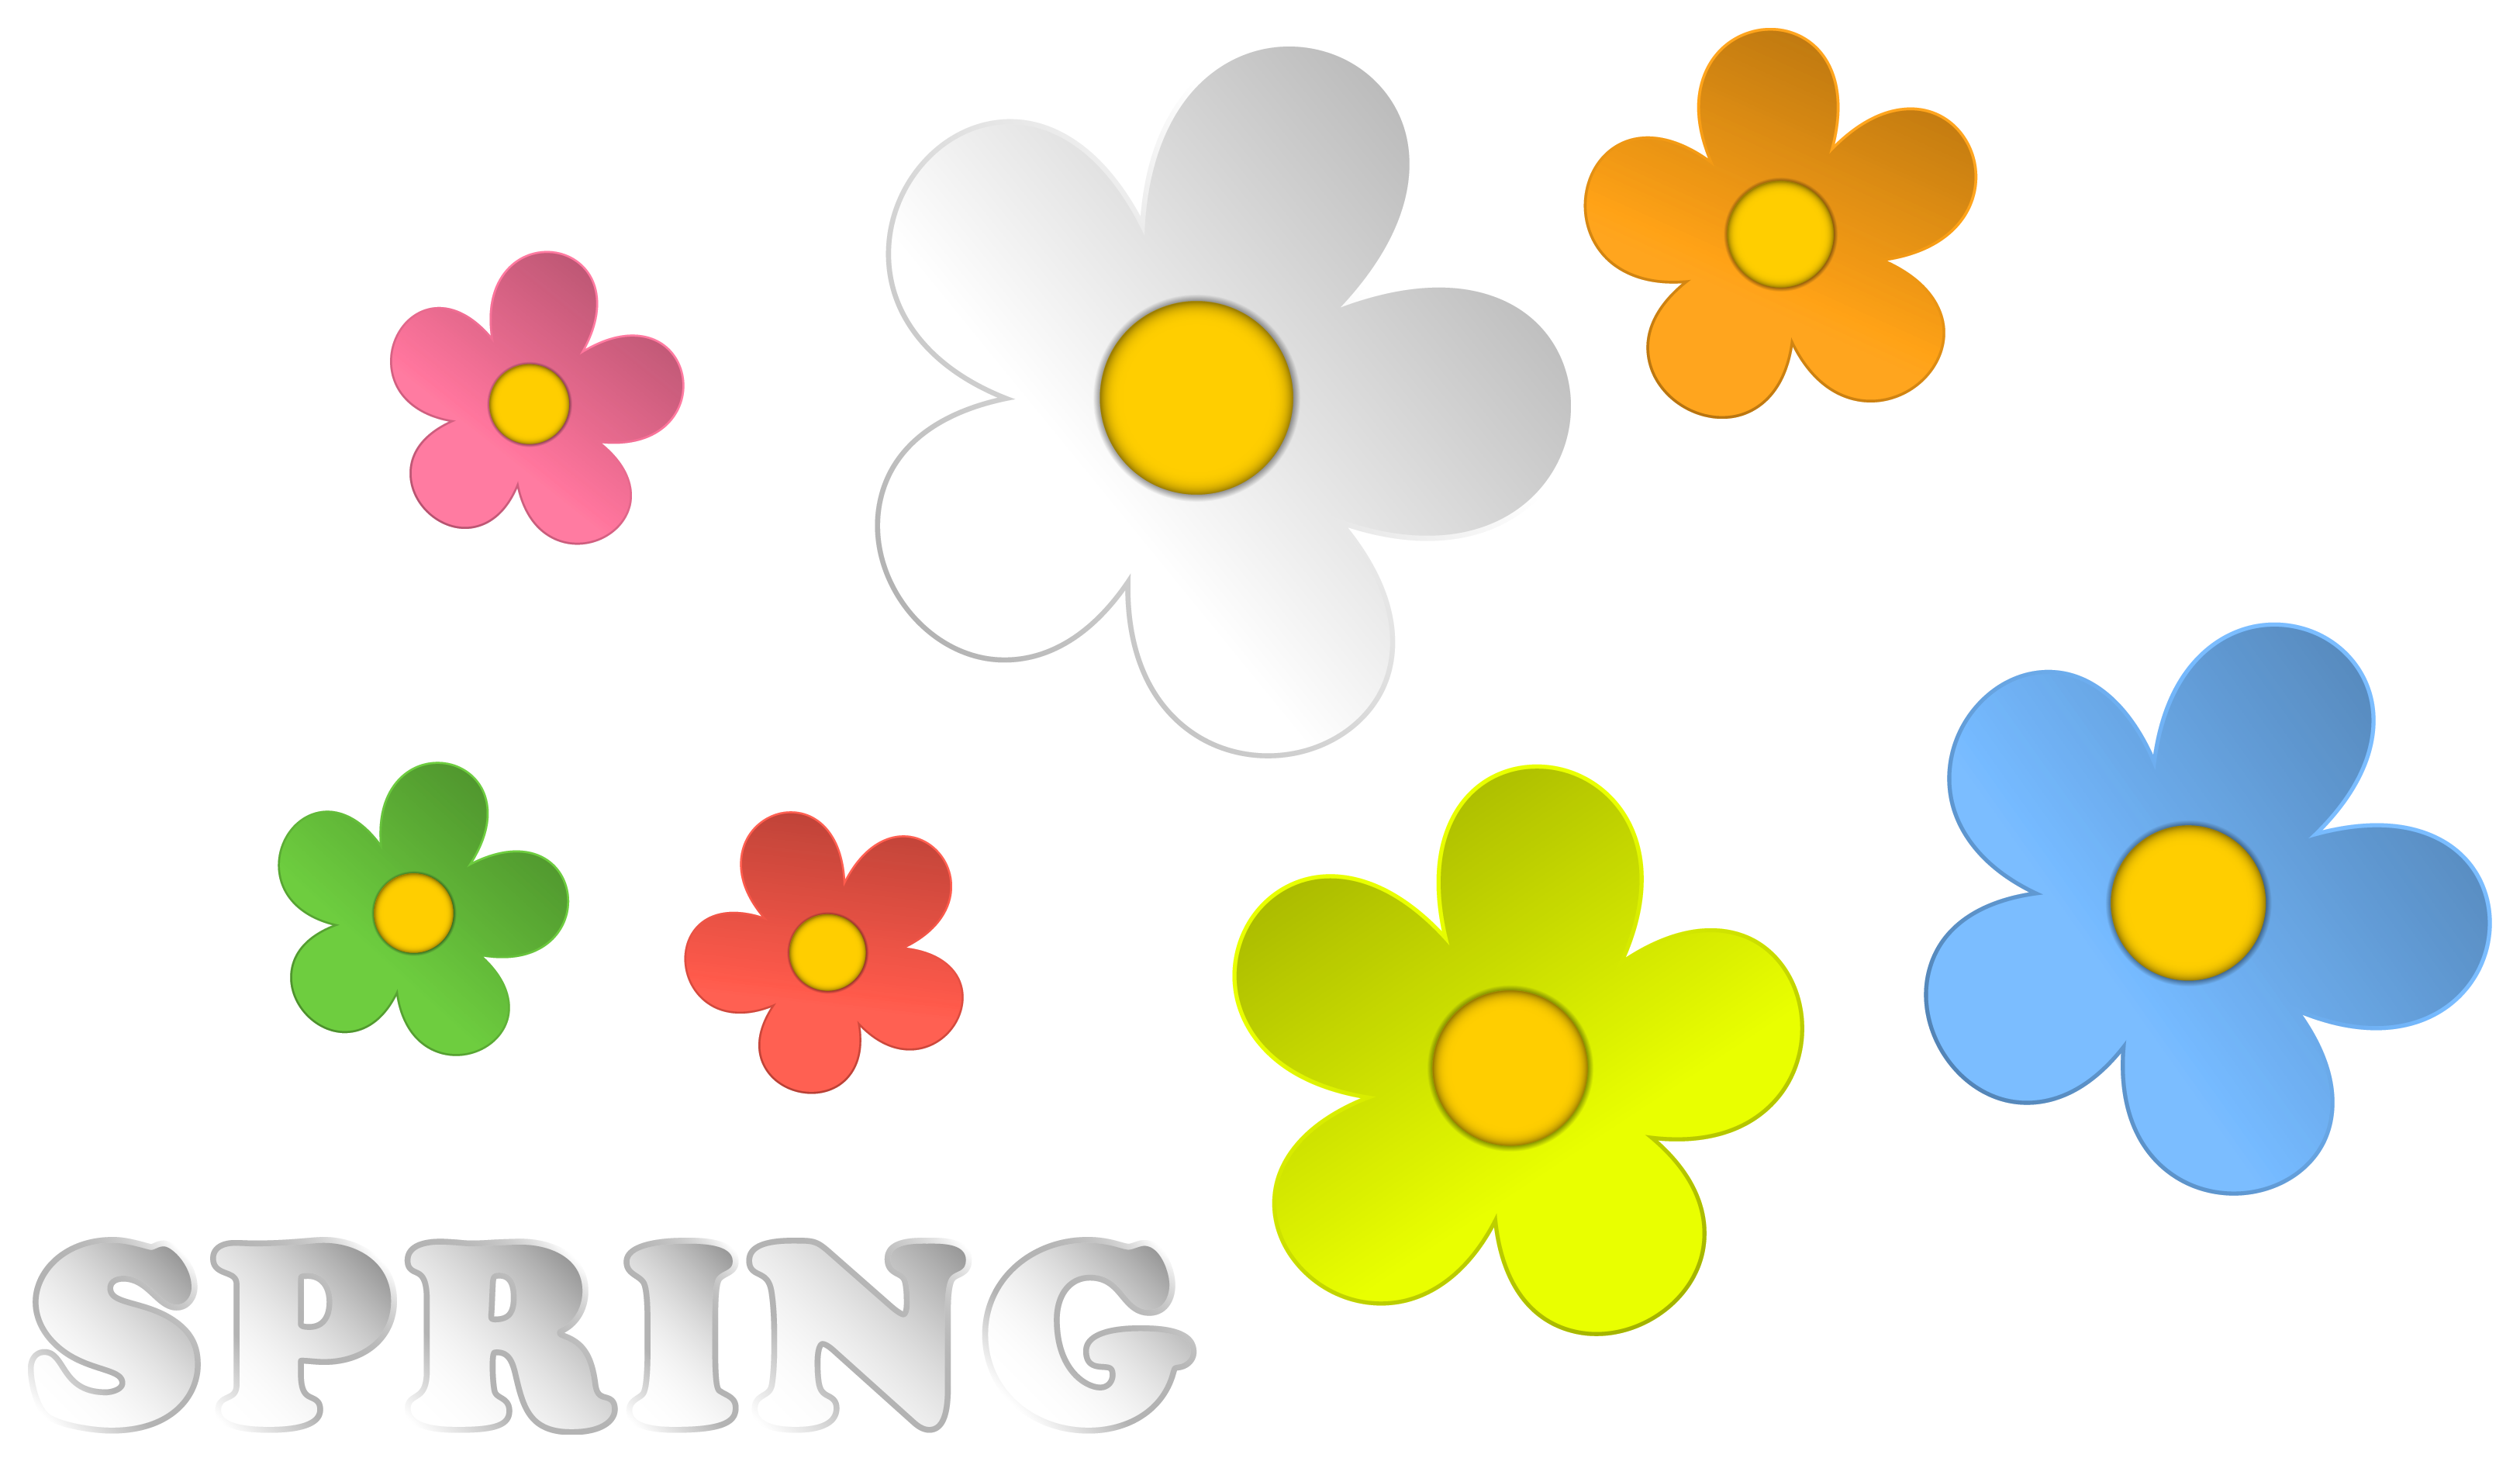 Spring flower clipart transparent banner royalty free download Spring flower clipart png - ClipartFest banner royalty free download